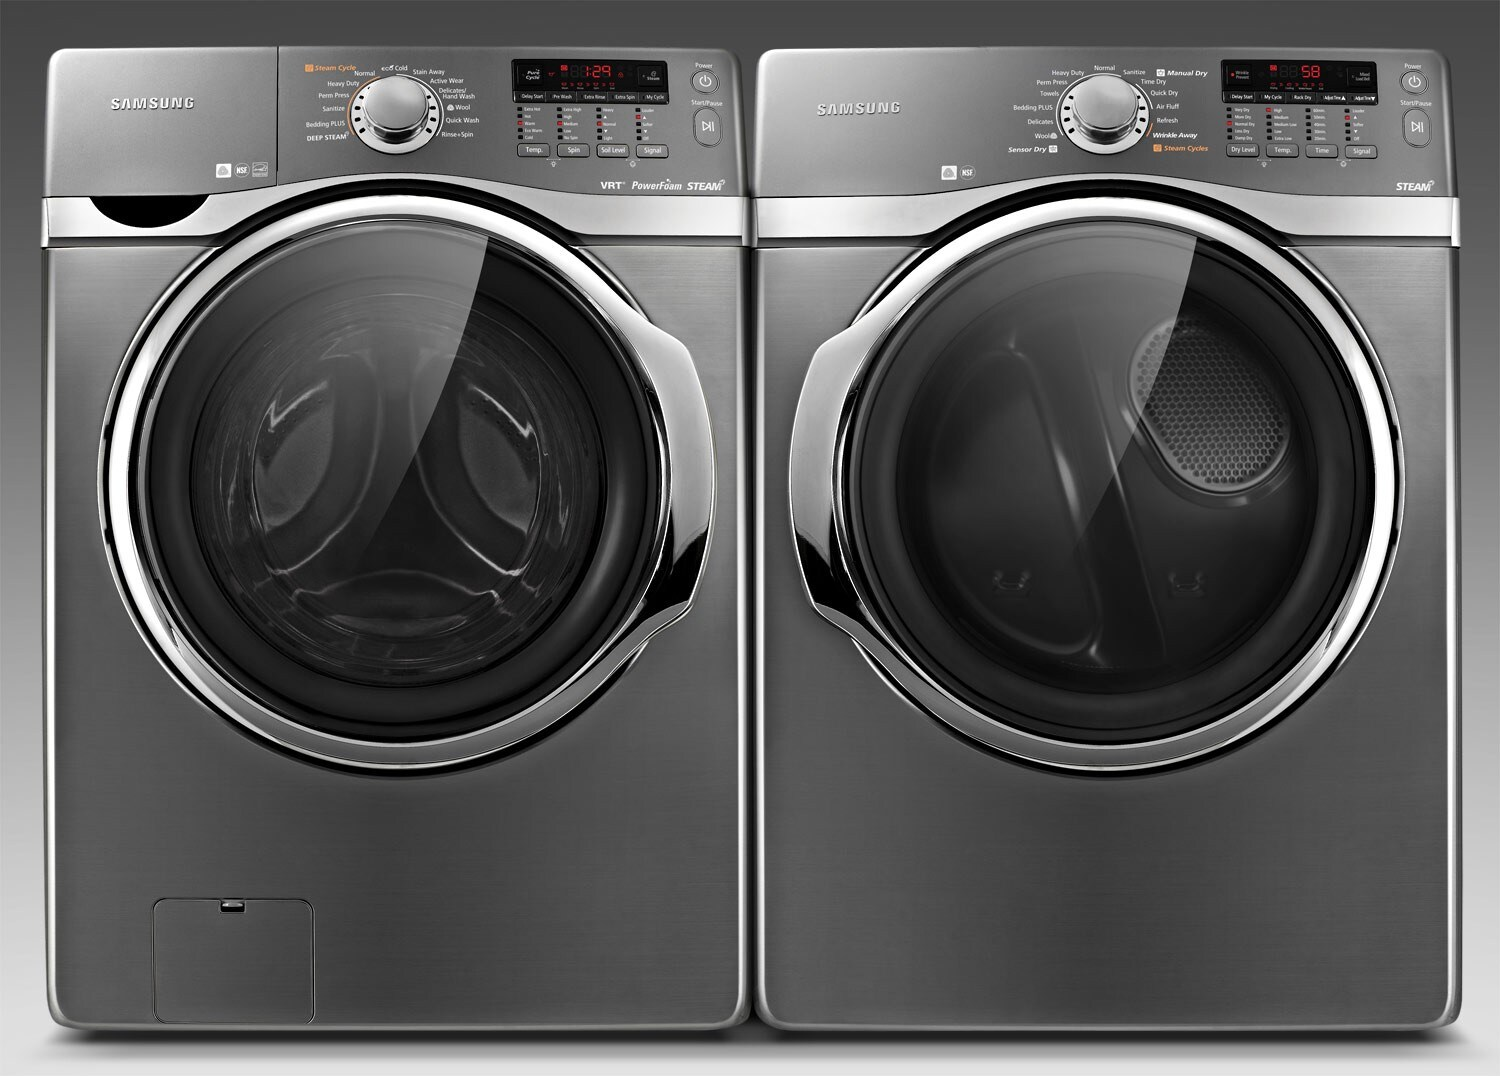 Appliances maytag epicz front load washer dryer now available